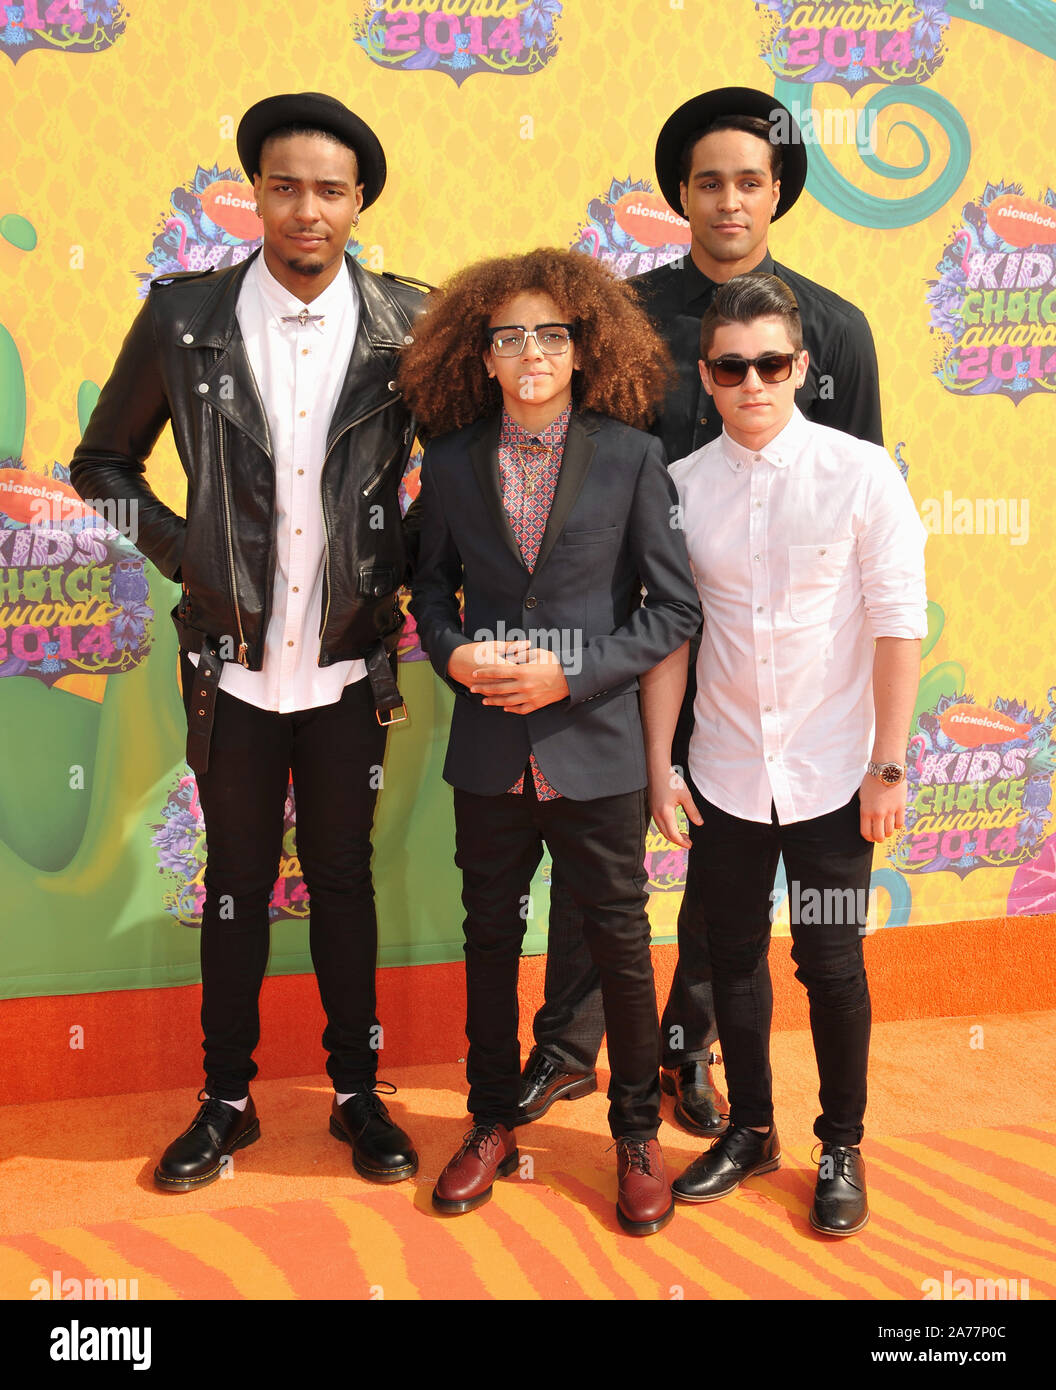 Los Angeles Ca March 29 2014 Dance Group Diversity Jordan Banjo Perri Kiely Ashley Banjo Mitchell Craske At Nickelodeon S 27th Annual Kids Choice Awards At The Galen Centre